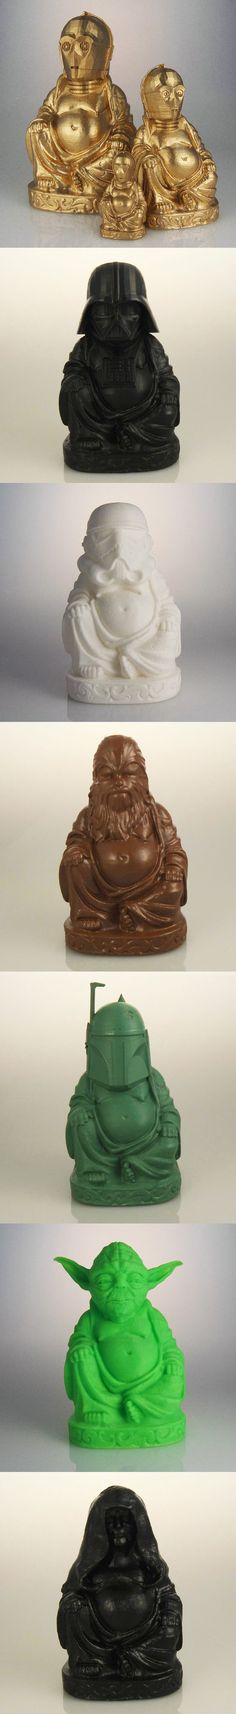 "We need these!!!  3D Printed Geeky Laughing Buddhas: What is the Sound of One Han Shooting? Tap into the force of Luck with Chris ""muckychris"" Milnes' 3D printed geeky Budai statues, which swaps the jelly bellied deity's head with characters from Star Wars"